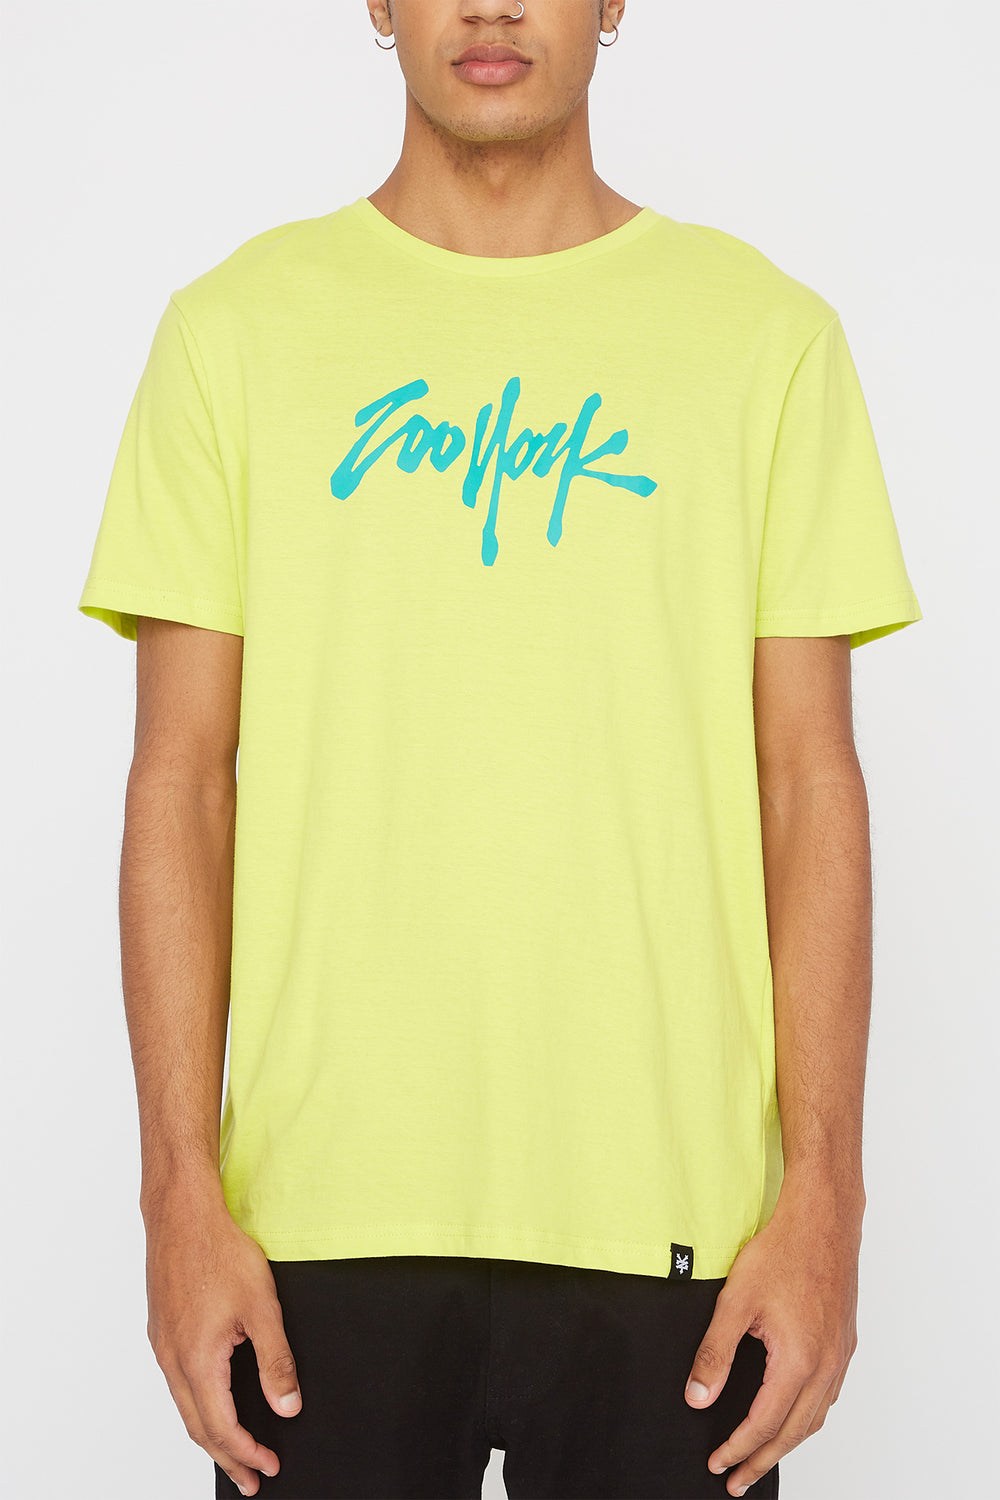 T-Shirt Quartiers NYC Zoo York Homme Jaune